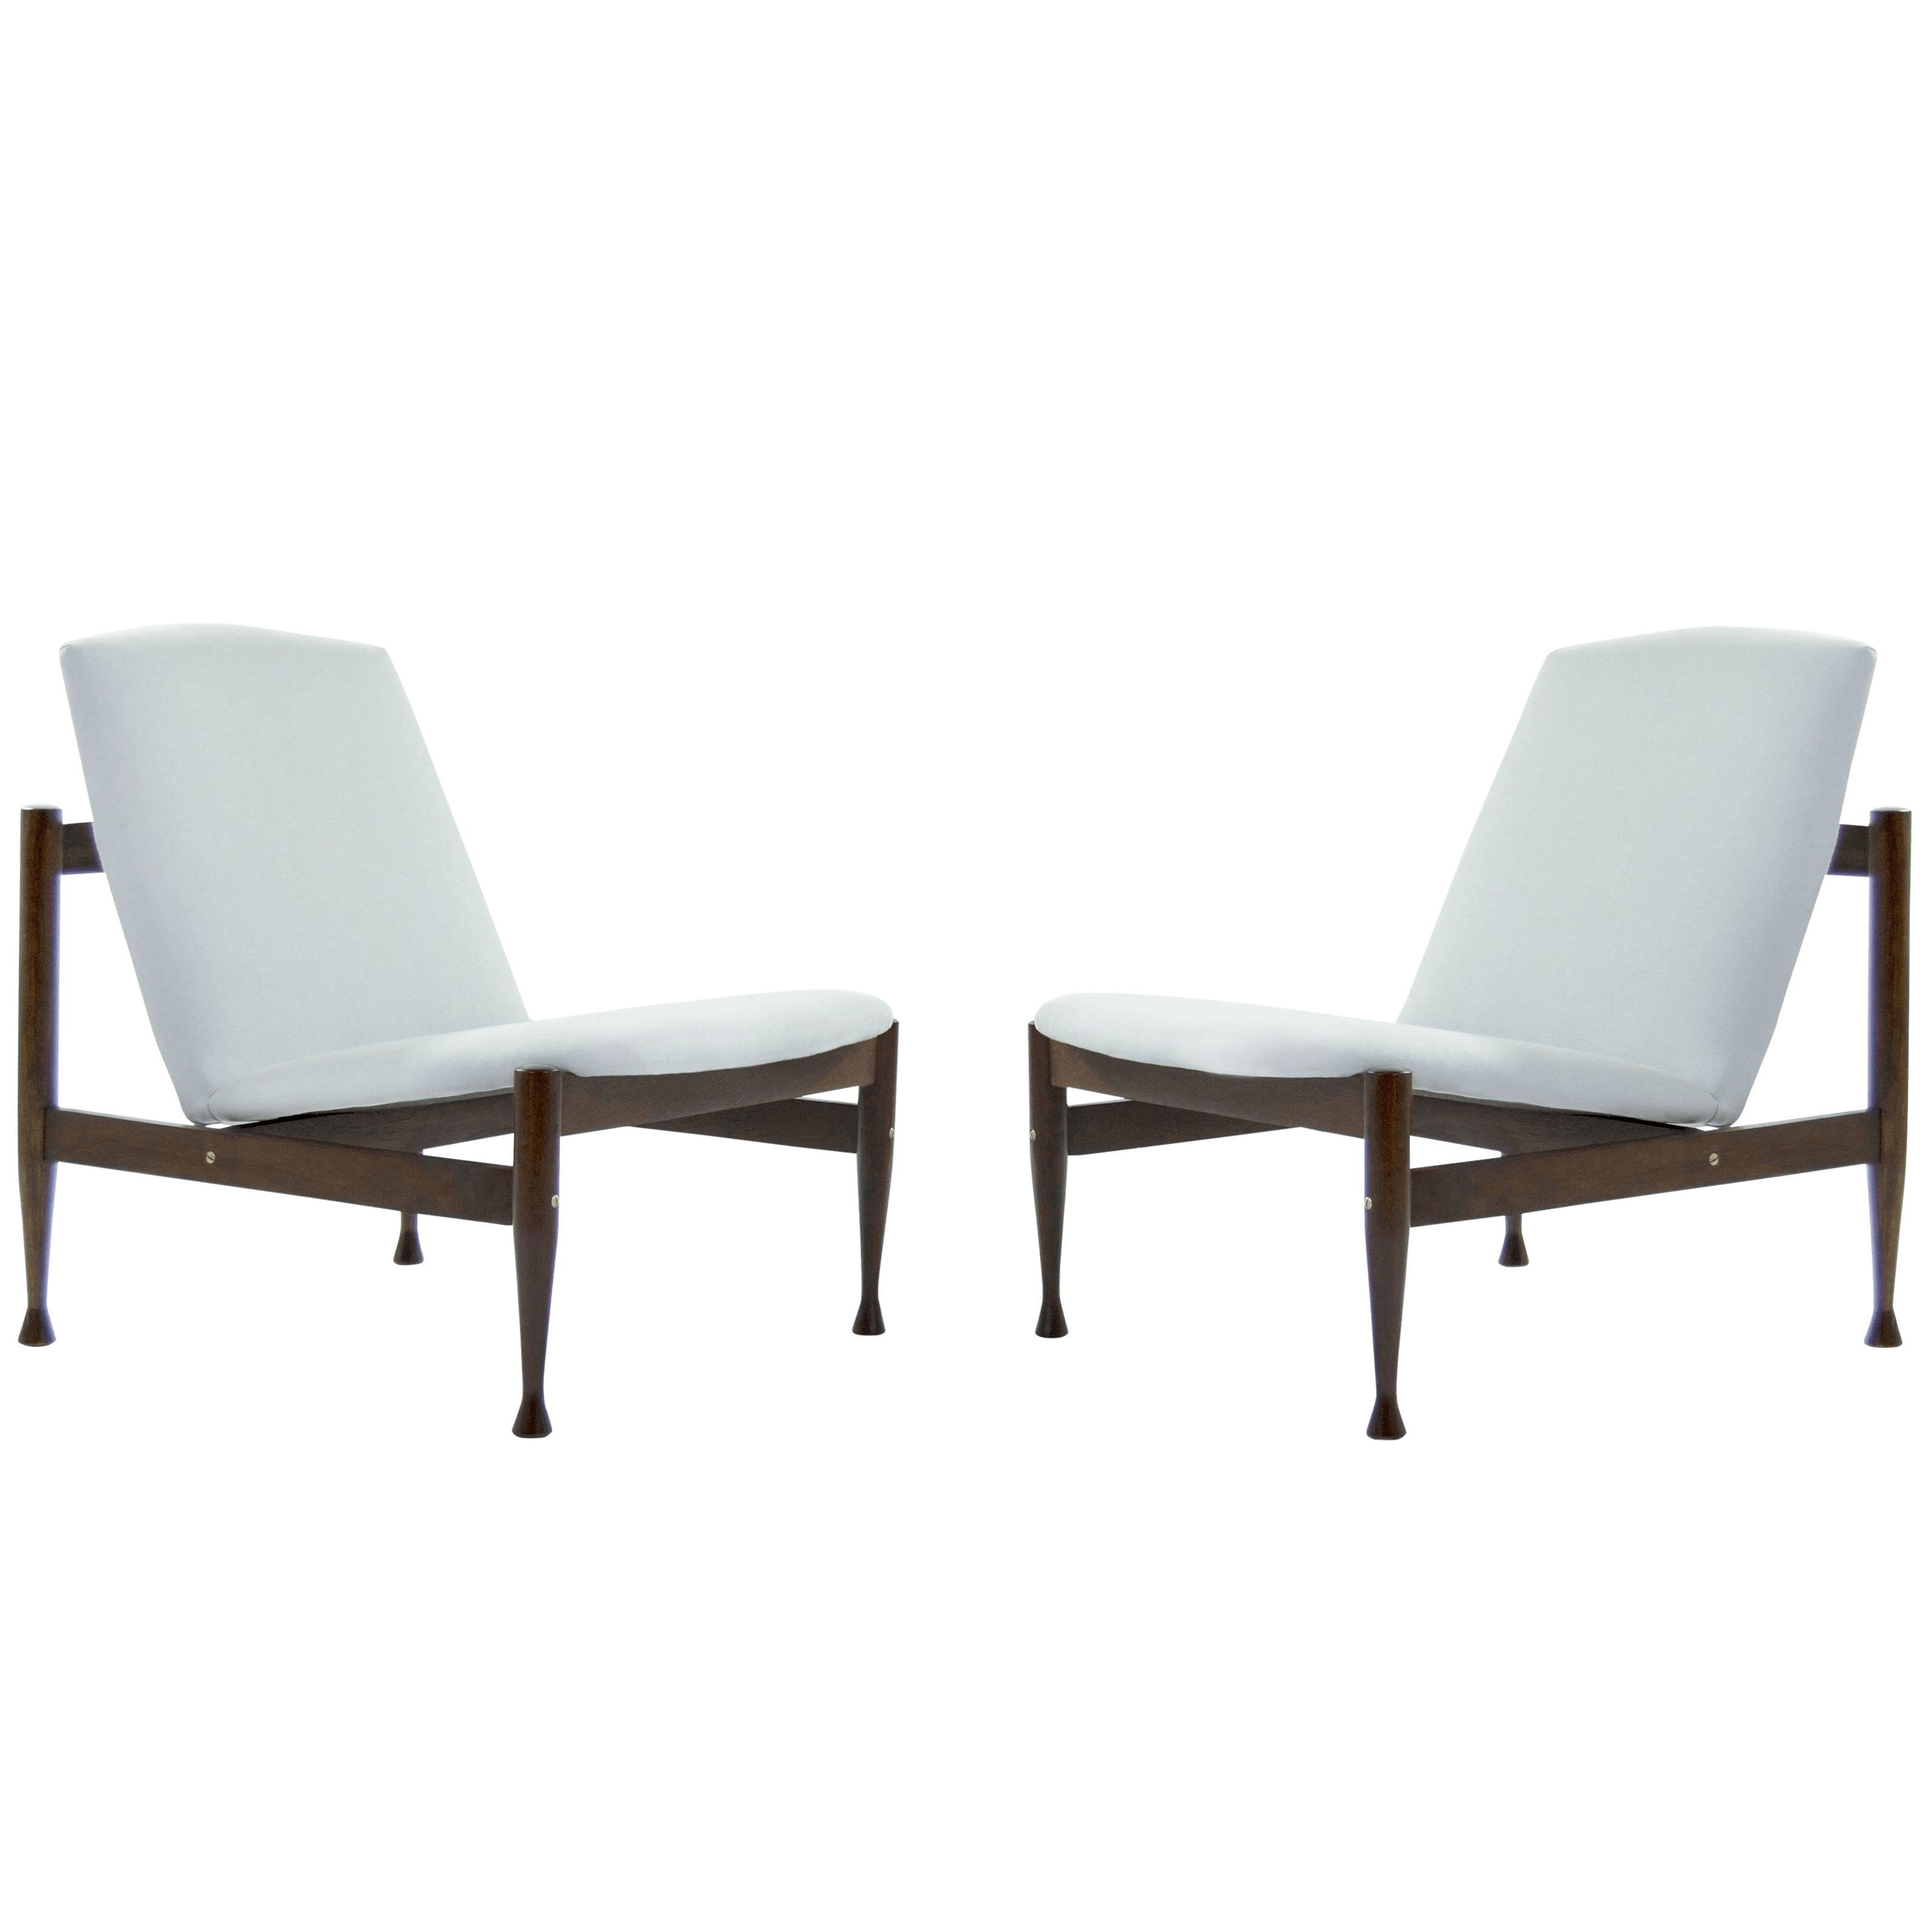 contemporary lounge chairs remote control holder for chair luxury danish modern brass accented a pair decaso sale